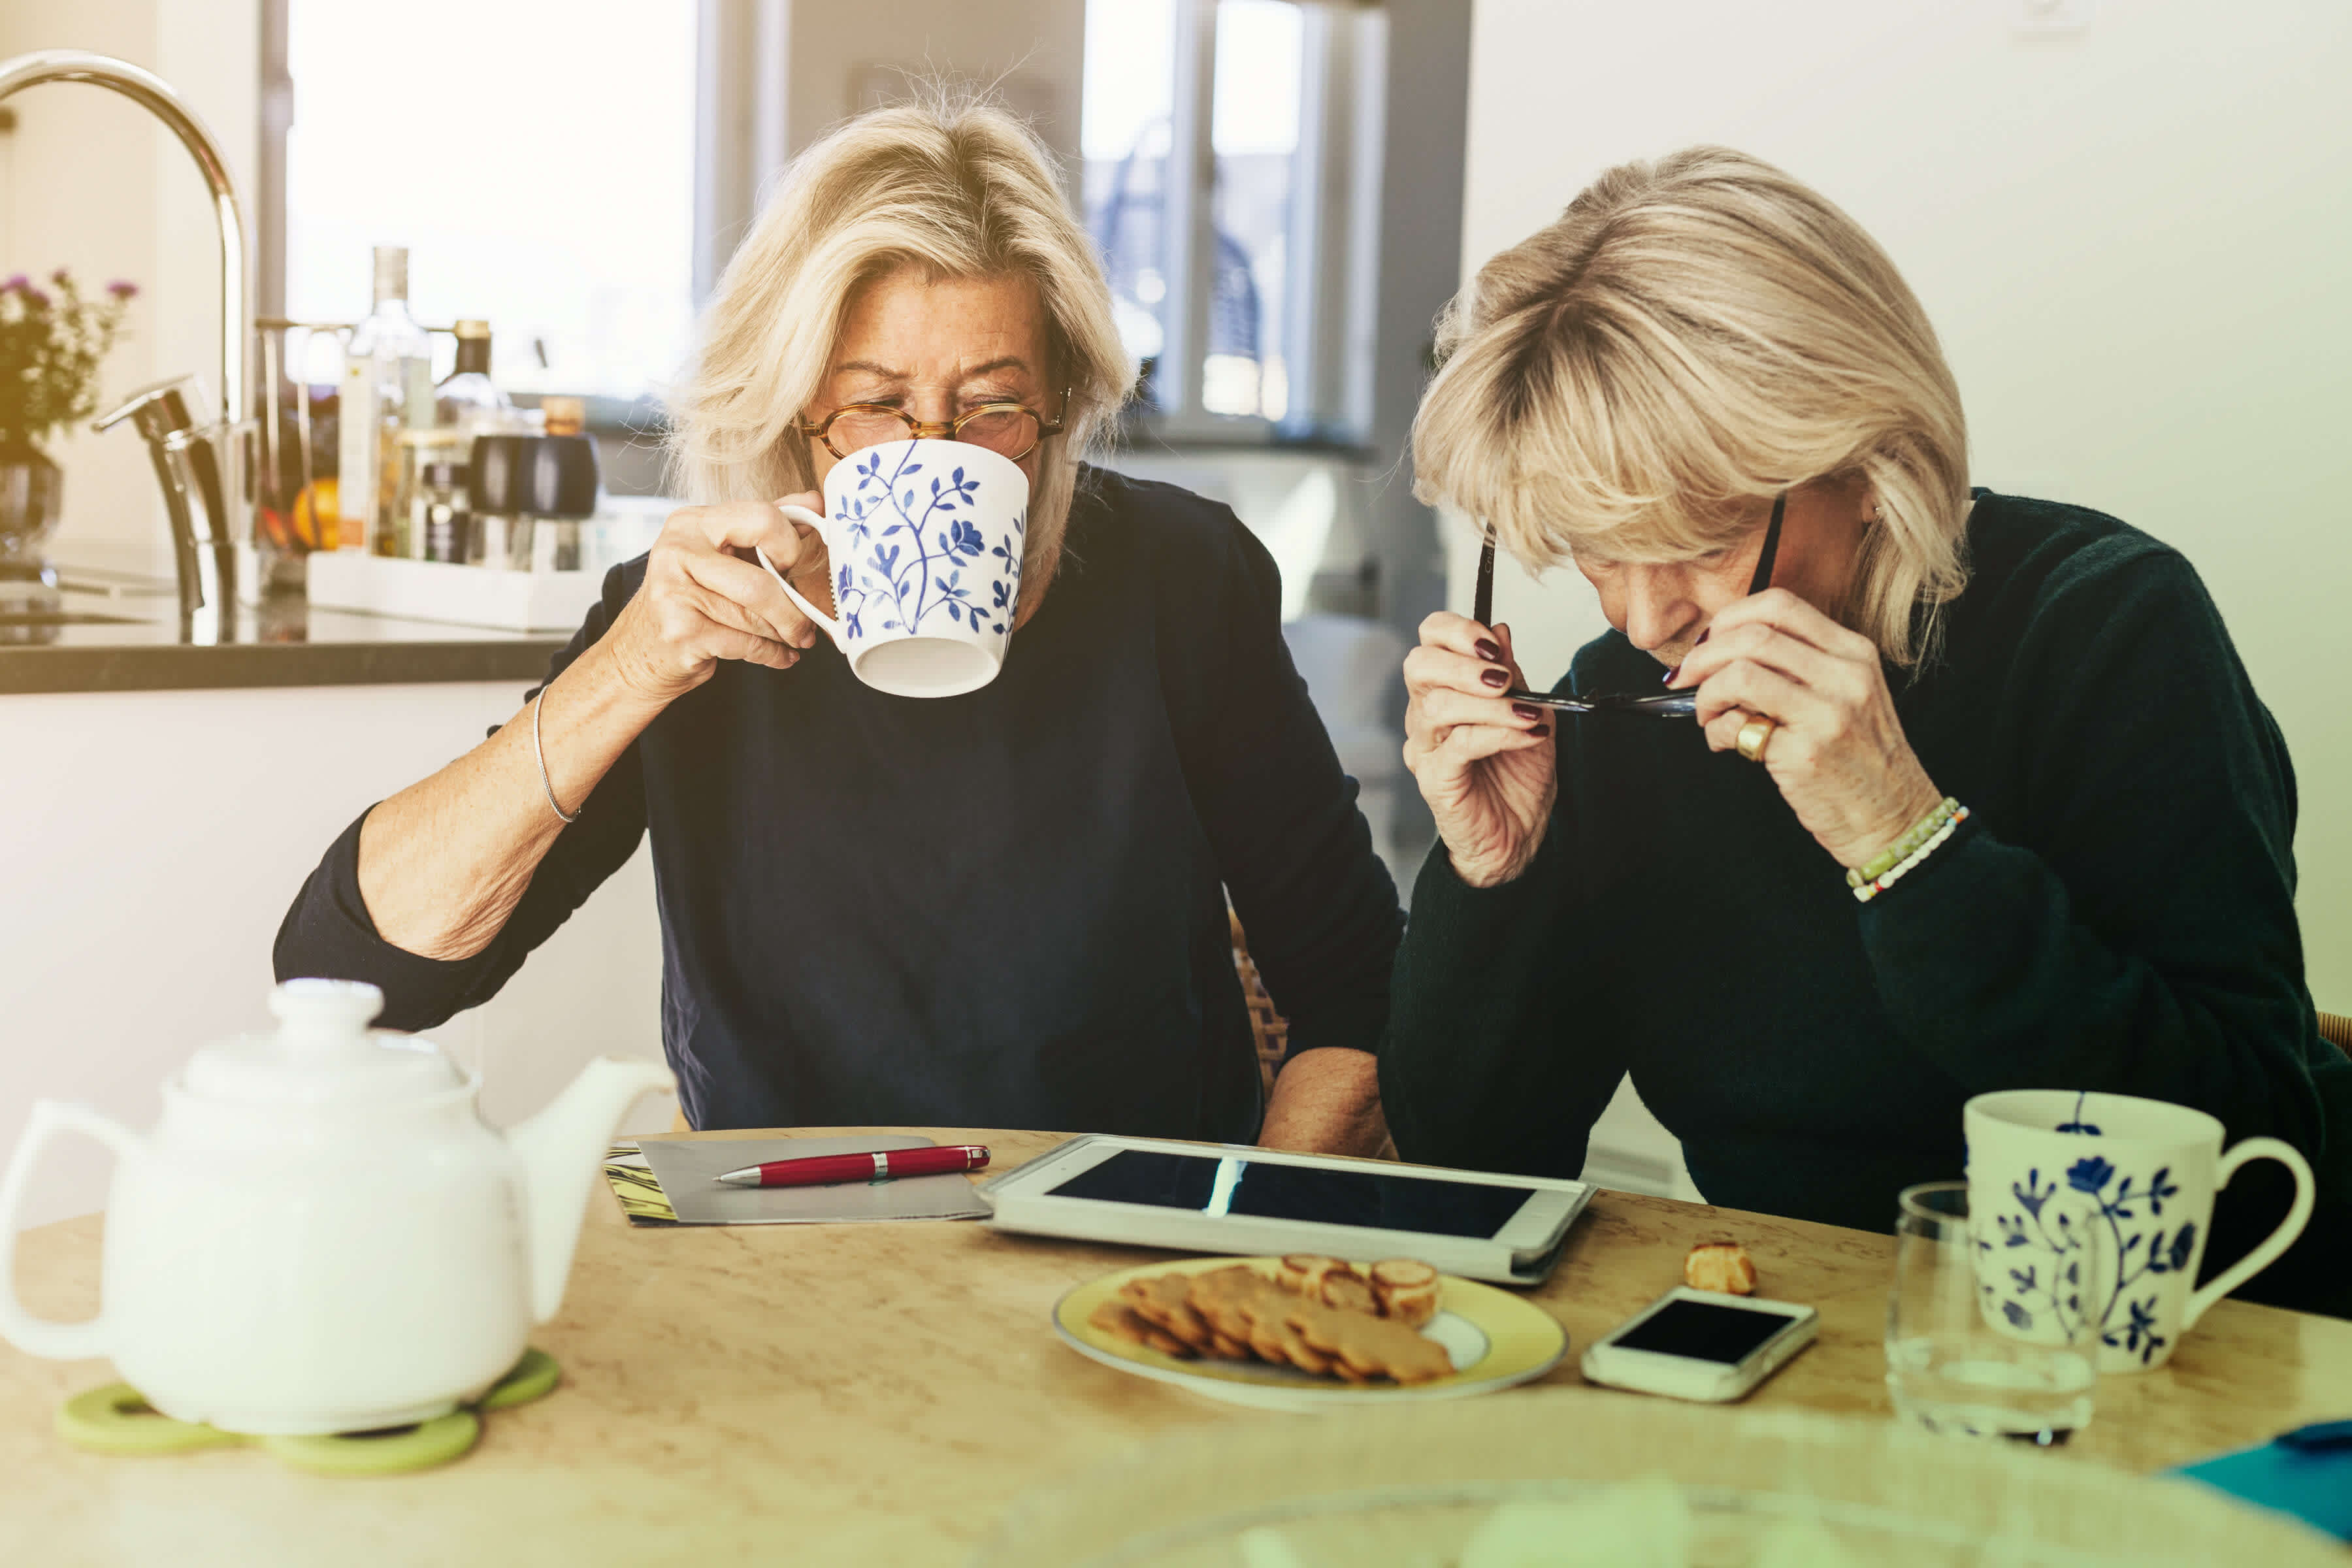 Two women are sitting at a kitchen table having coffee, while working on an iPad.